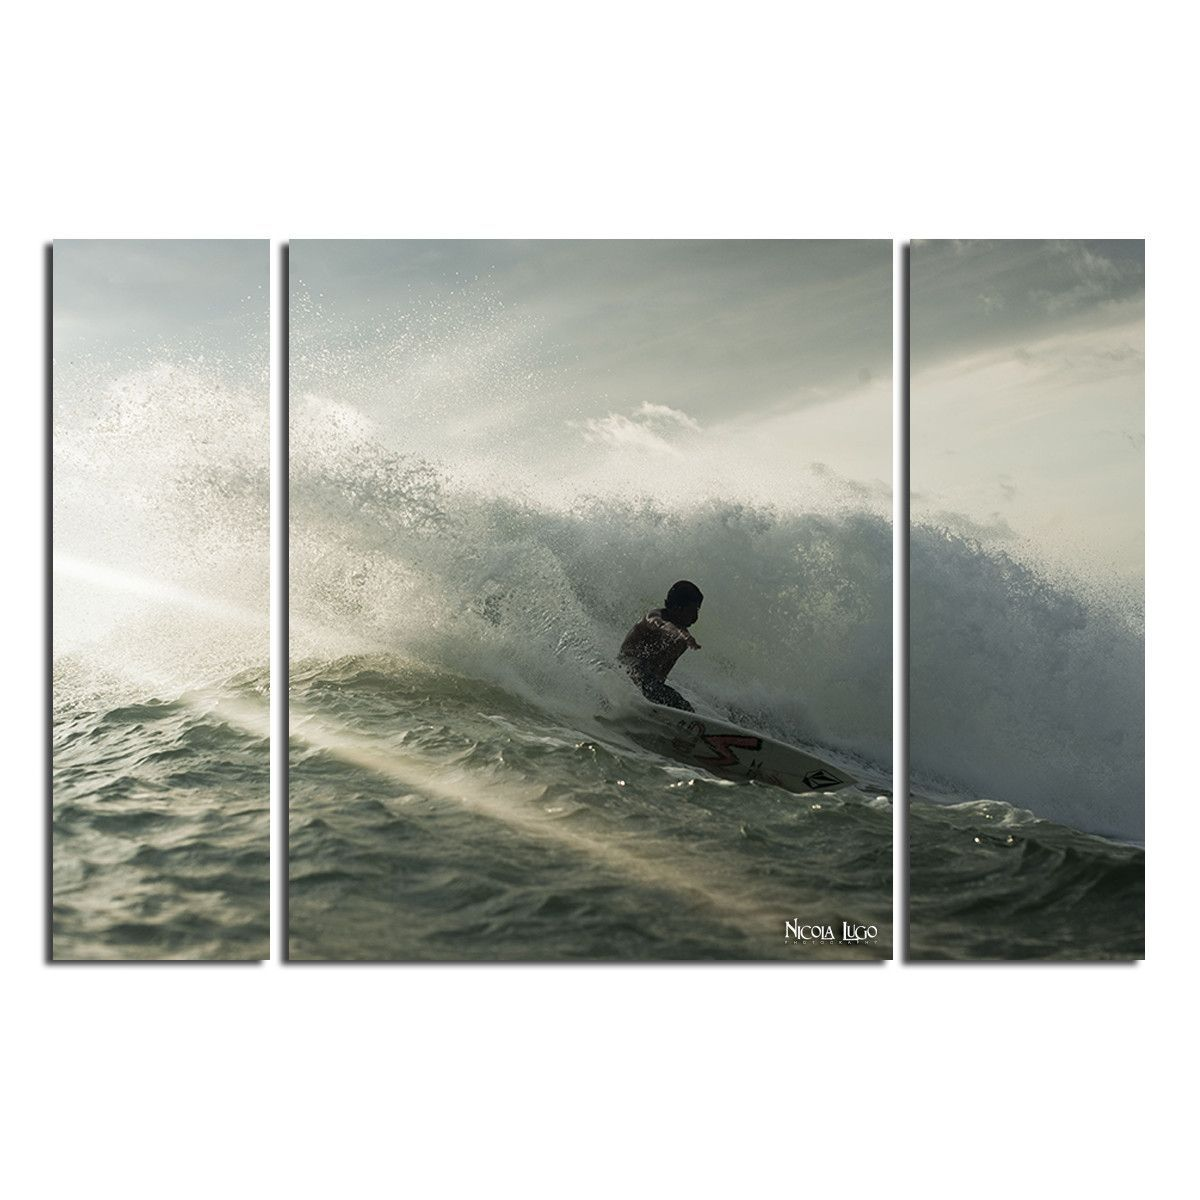 'Surf' 3 by Nicola Lugo 3 Piece Photographic Print on Wrapped Canvas Set